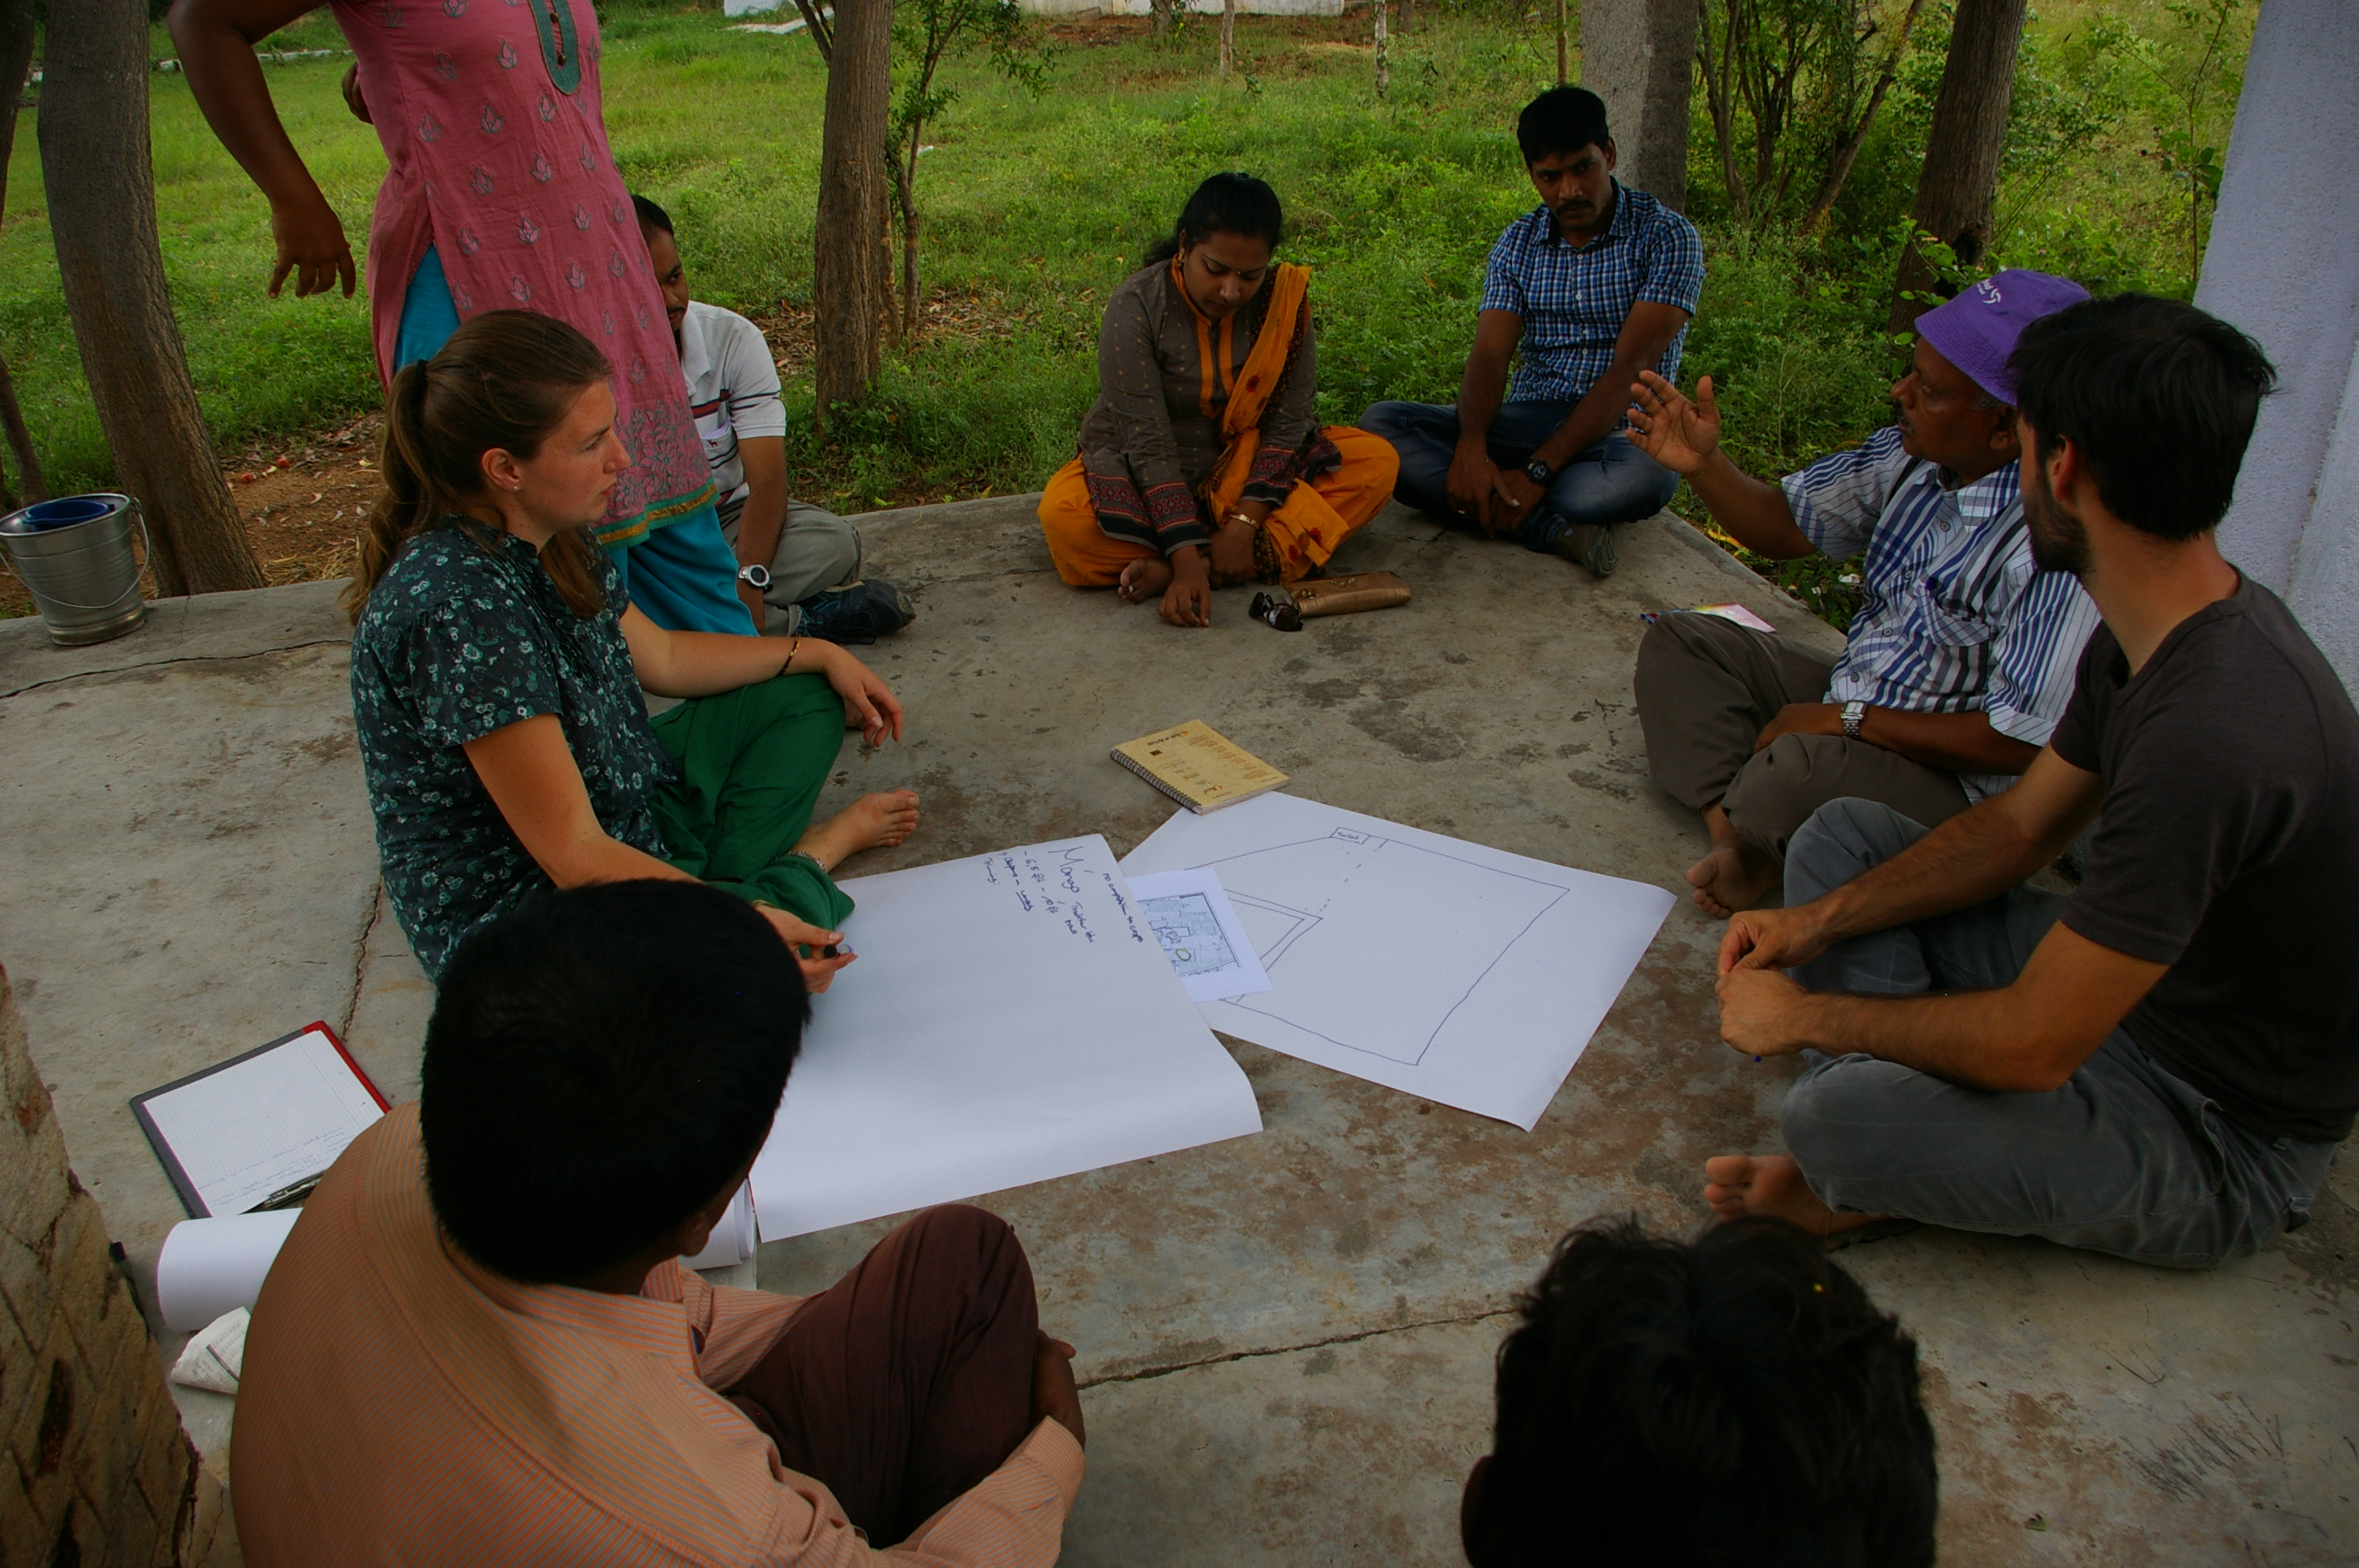 Discussion and project planning